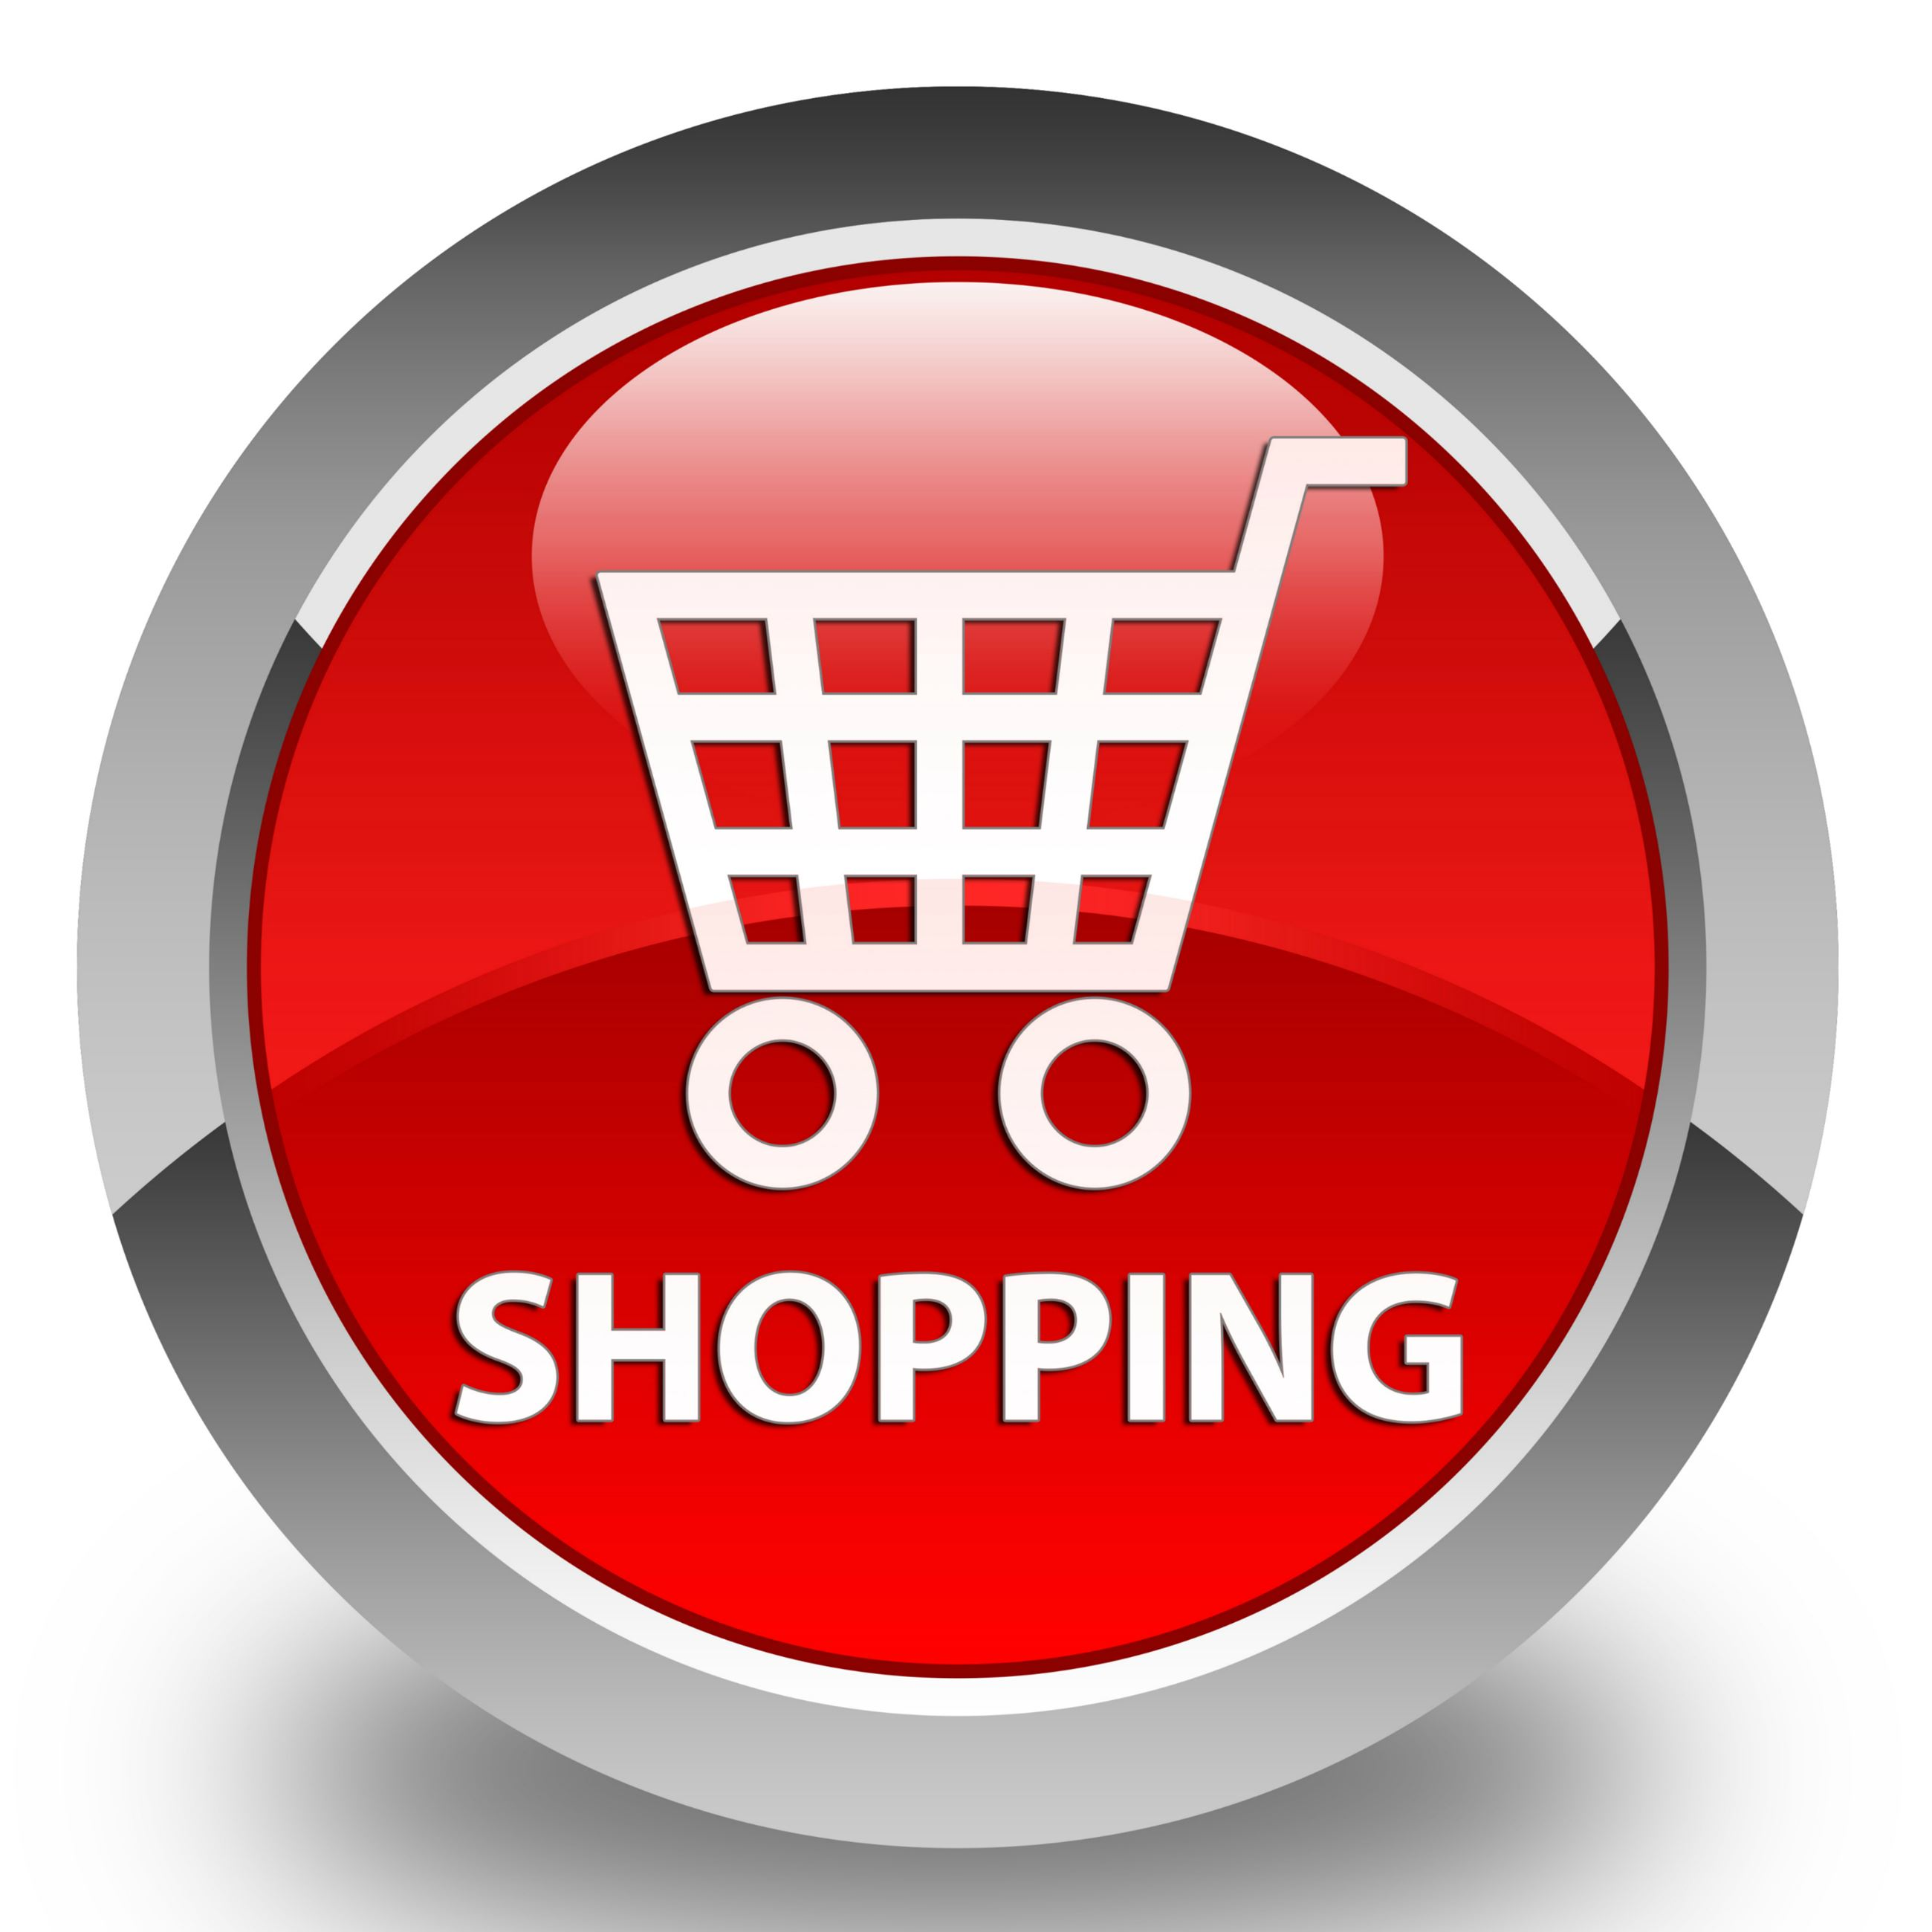 CLICK HERE For More Information About Shopping In Porter County